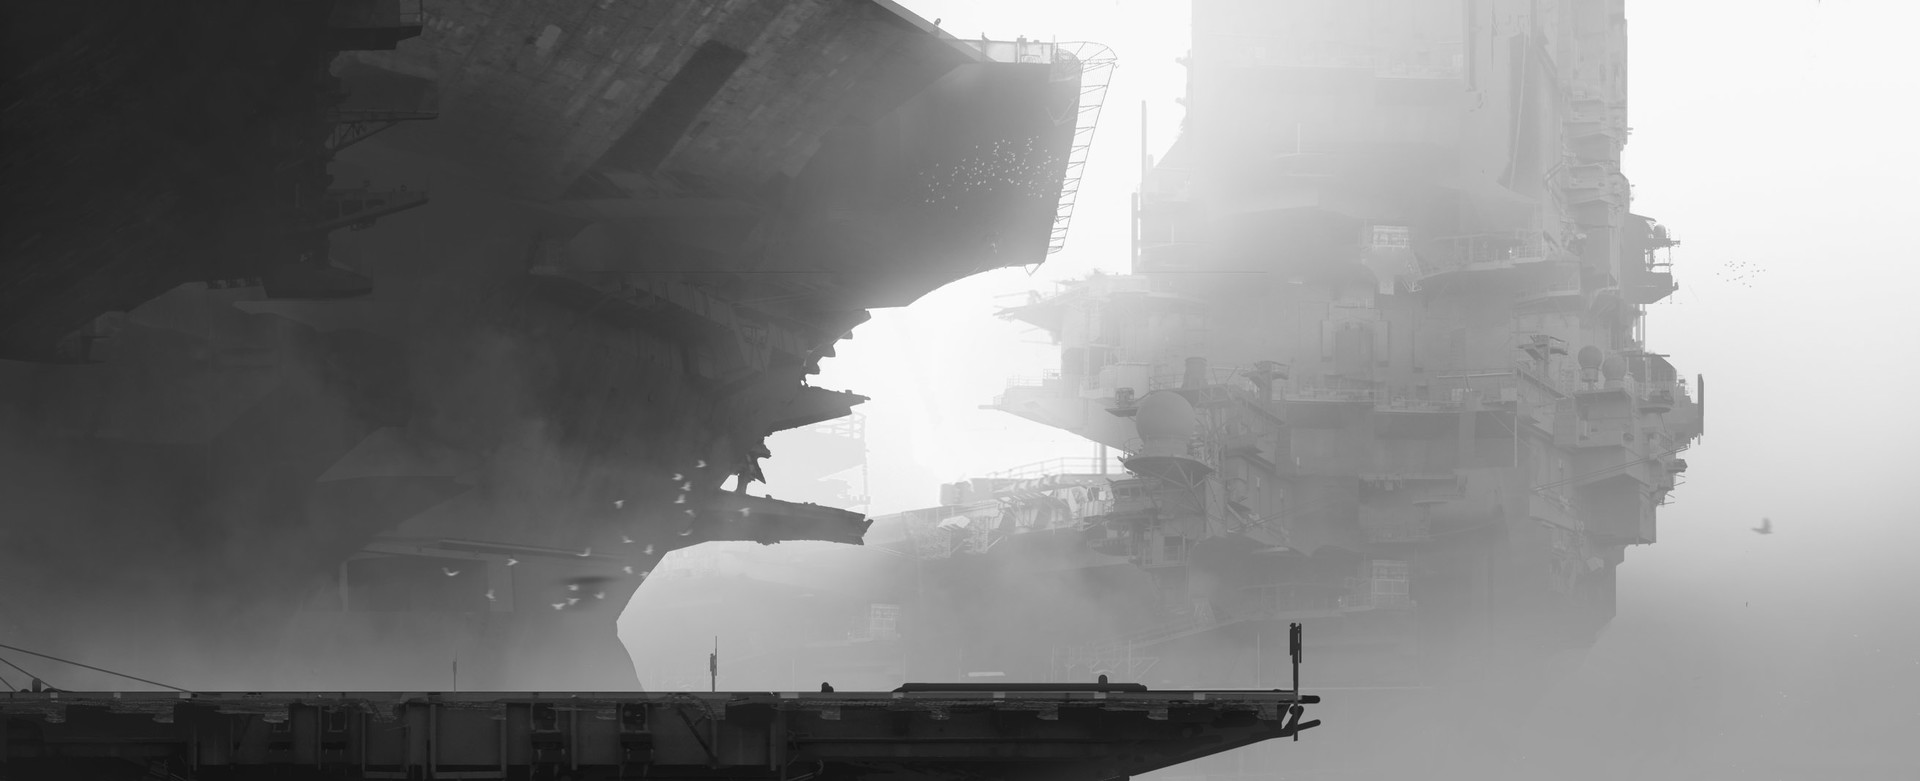 Waqas malik bnw concept art april17